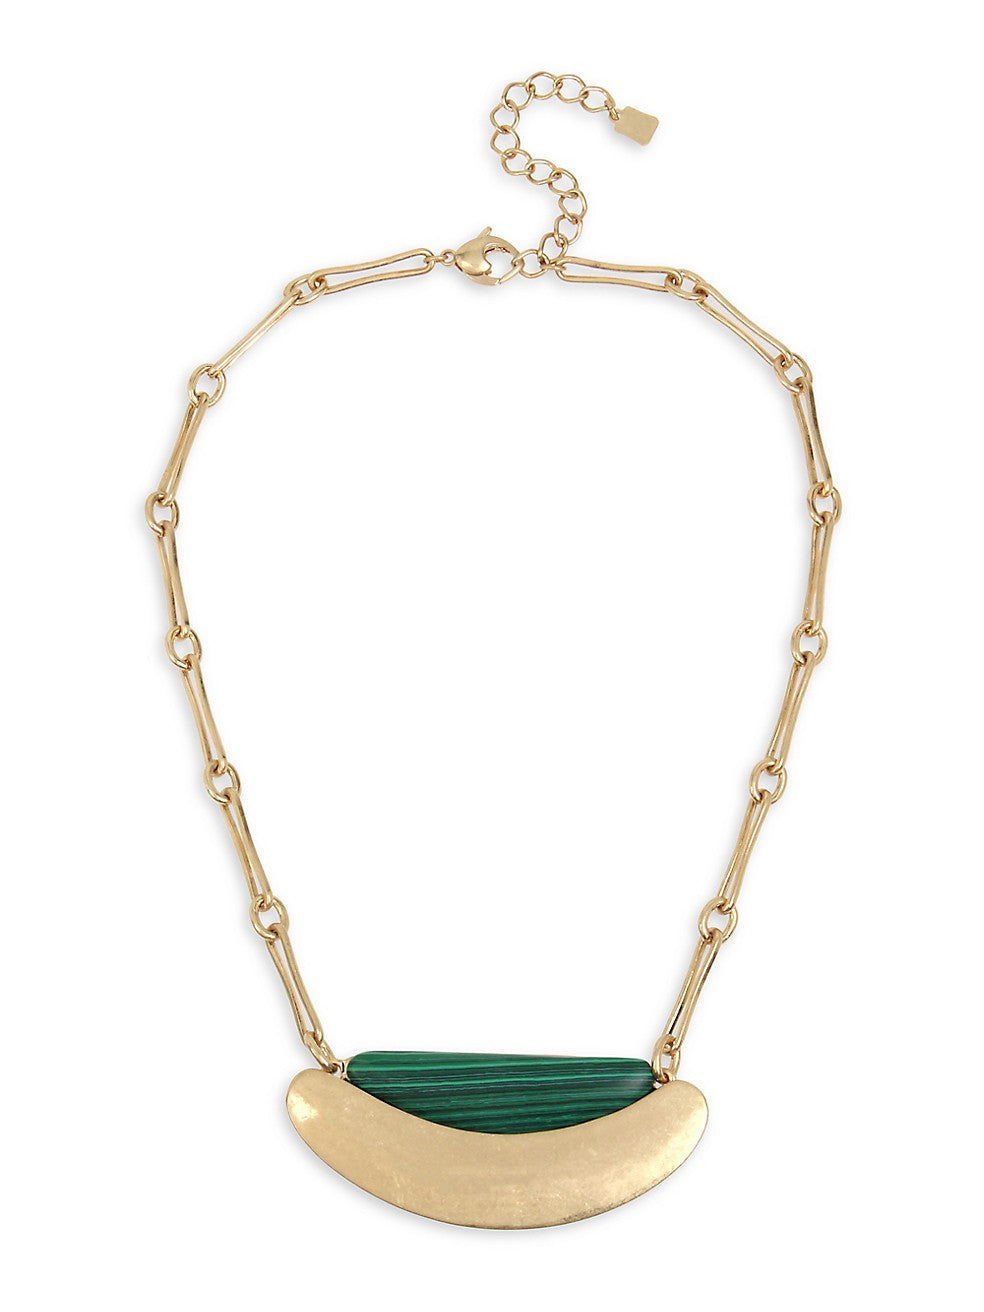 Greener Pastures Goldtone & Green Malachite Sculptural Curved Necklace